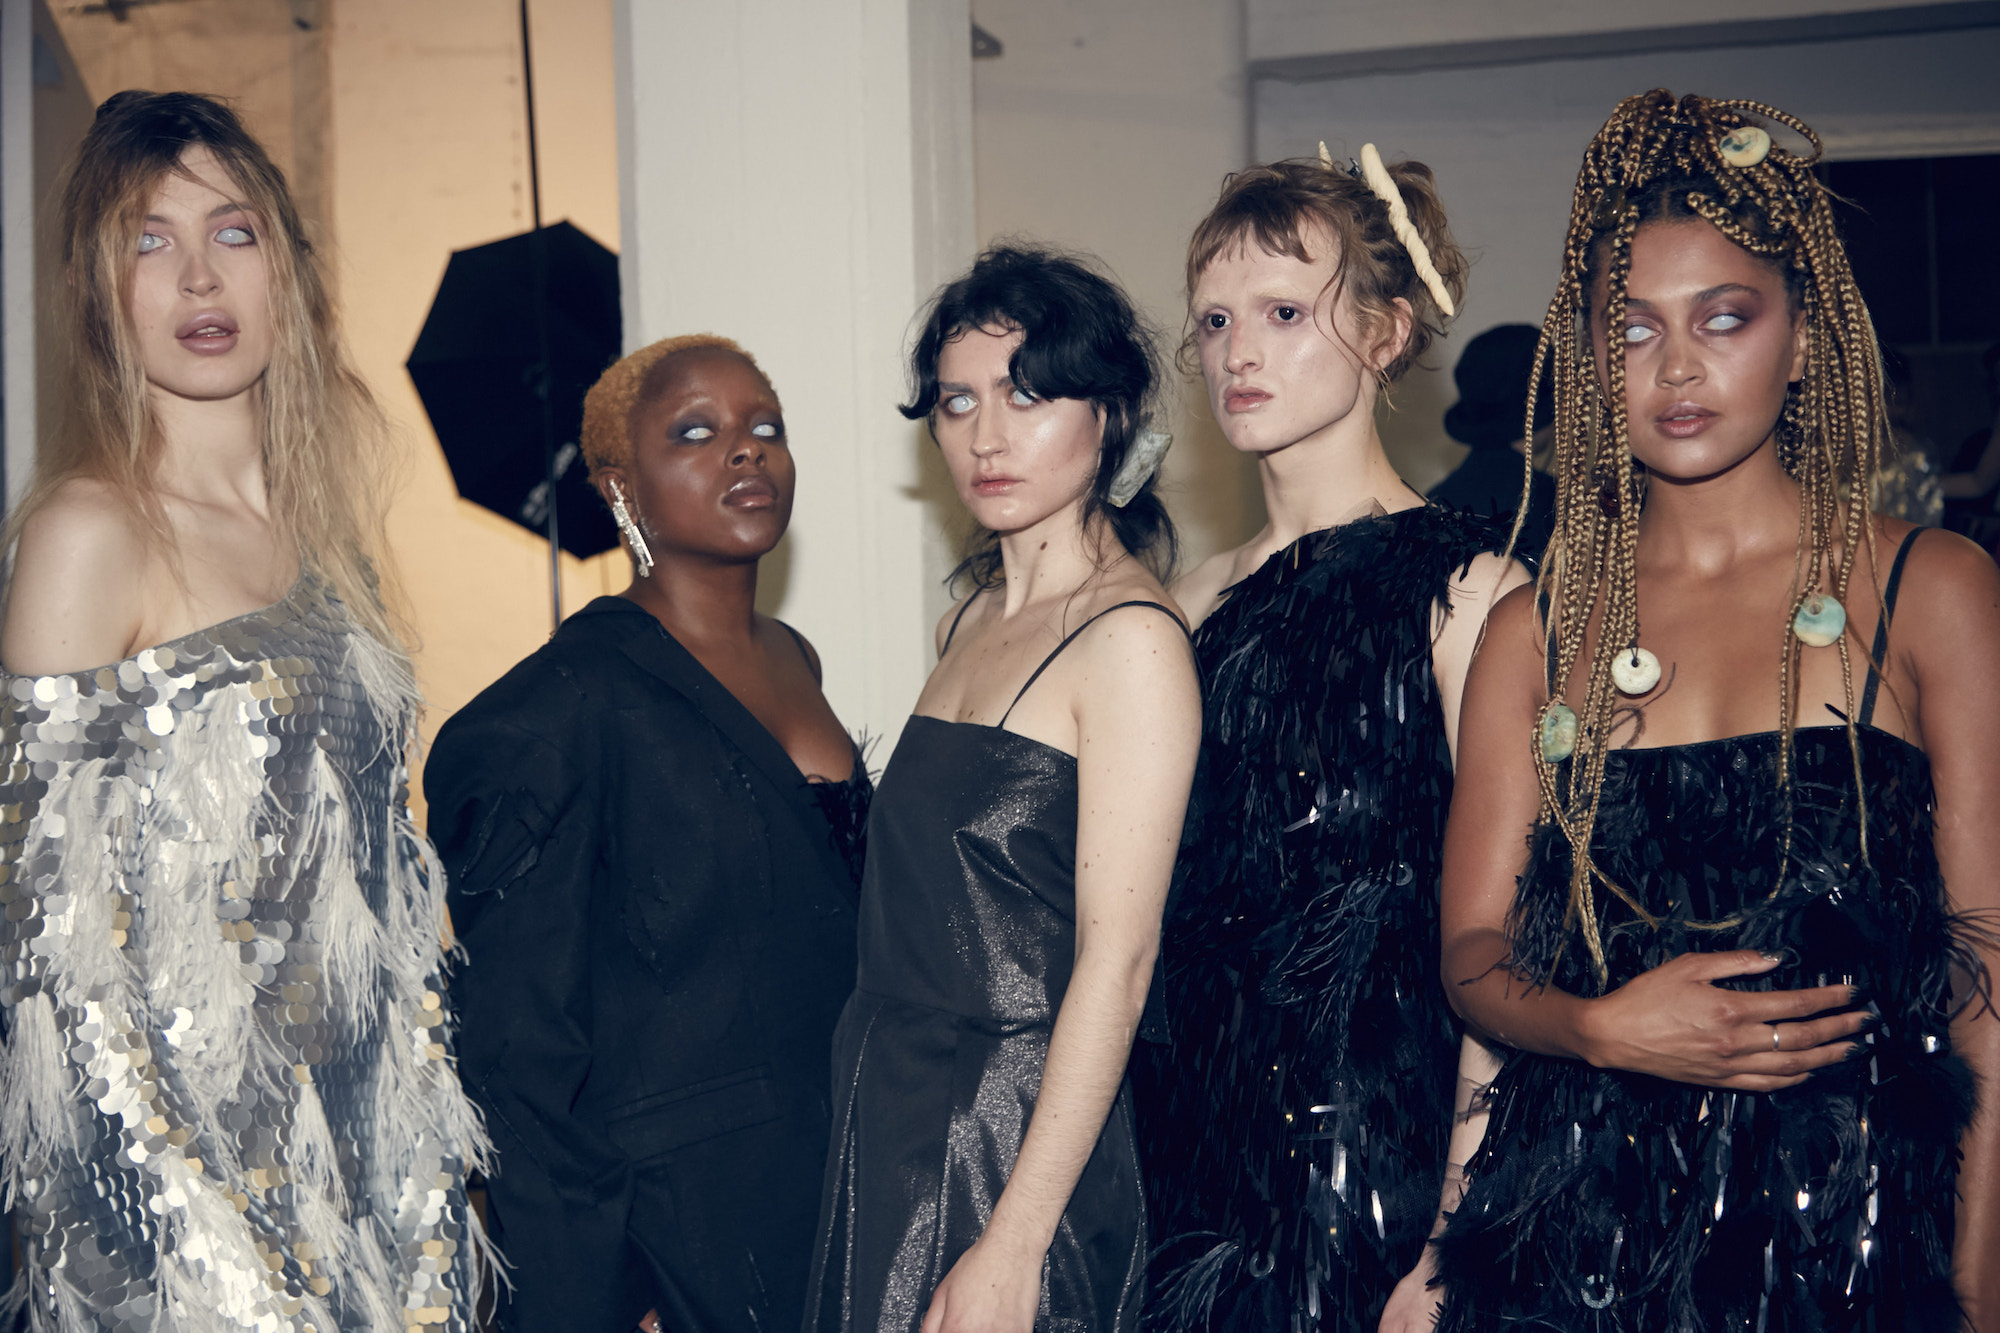 Art School Spring/Summer 2020 model group